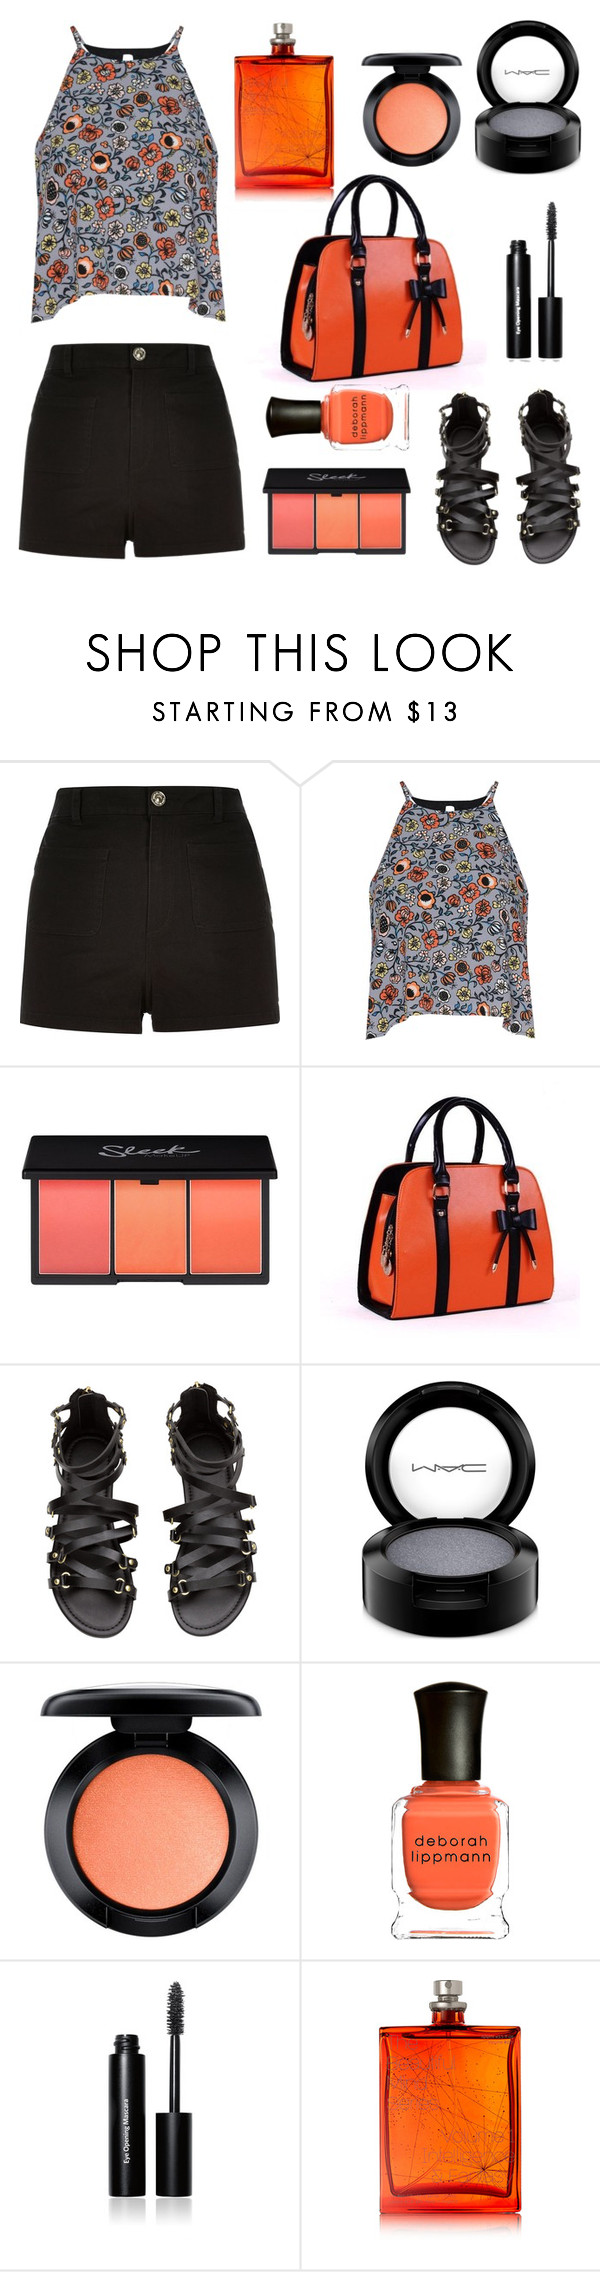 """""""Black and new black..."""" by confusioninme ❤ liked on Polyvore featuring River Island, Glamorous, MAC Cosmetics, Deborah Lippmann, Bobbi Brown Cosmetics and The Beautiful Mind Series"""